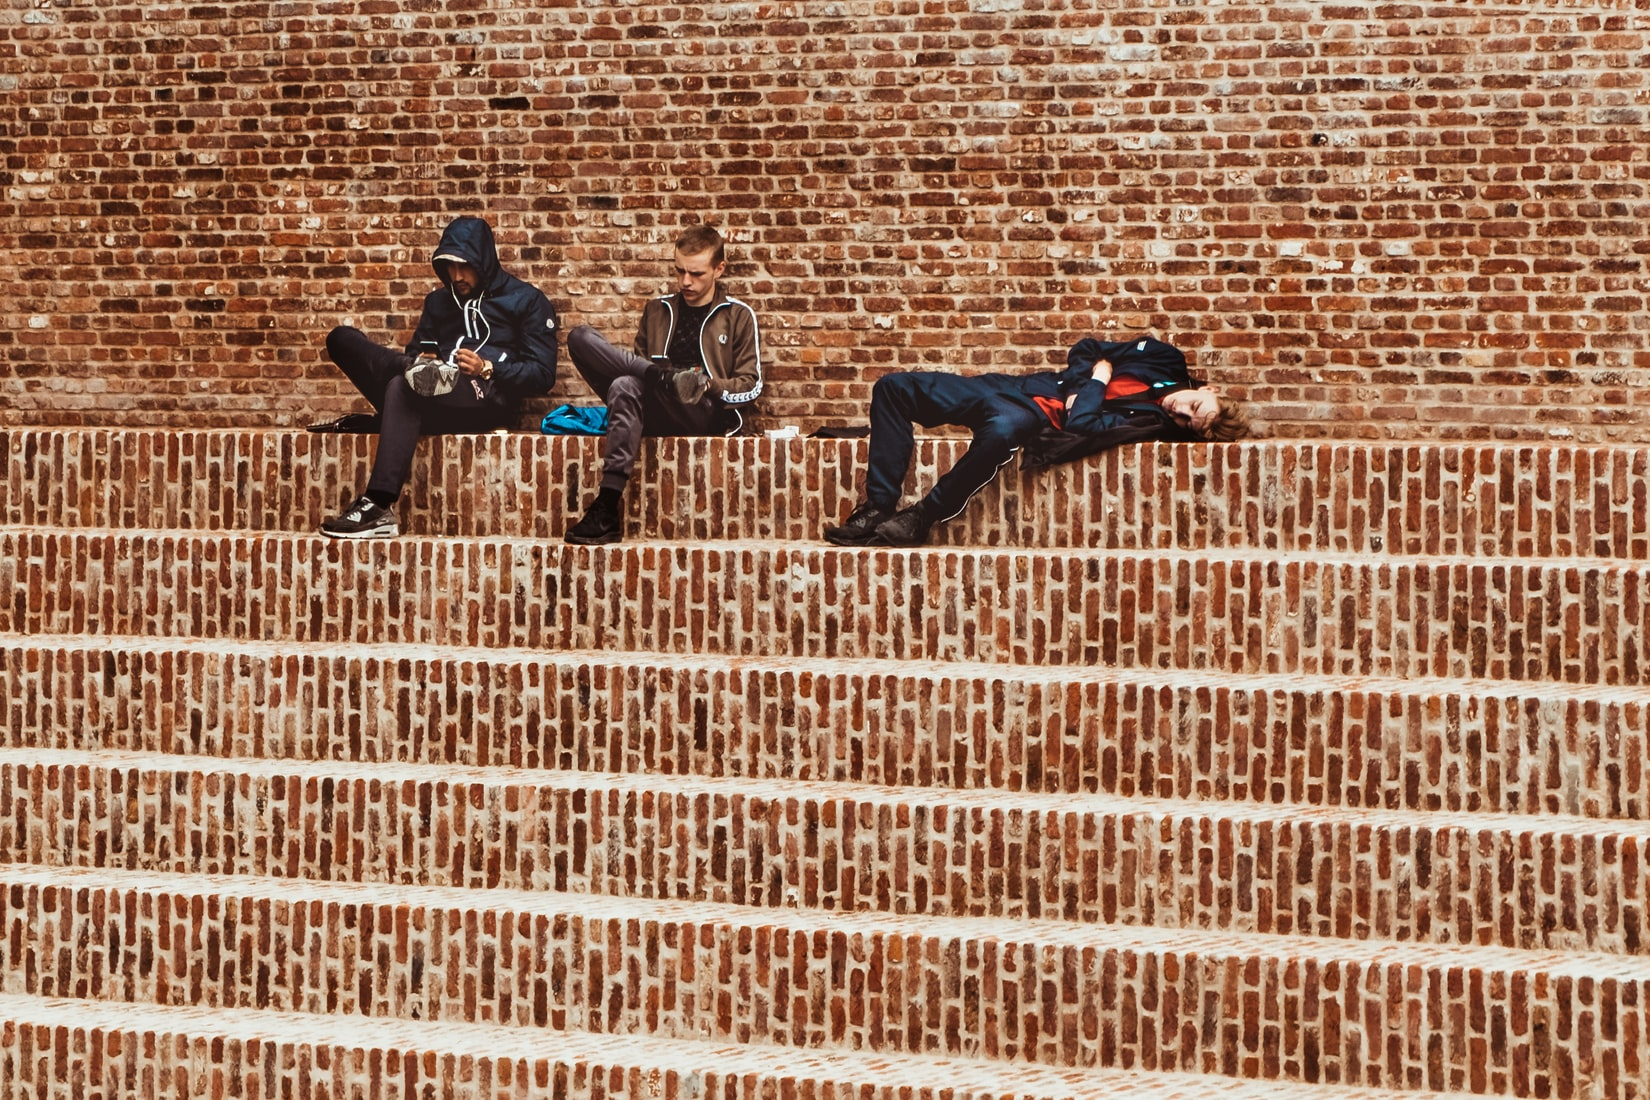 Three men sitting on brick stairs outdoors